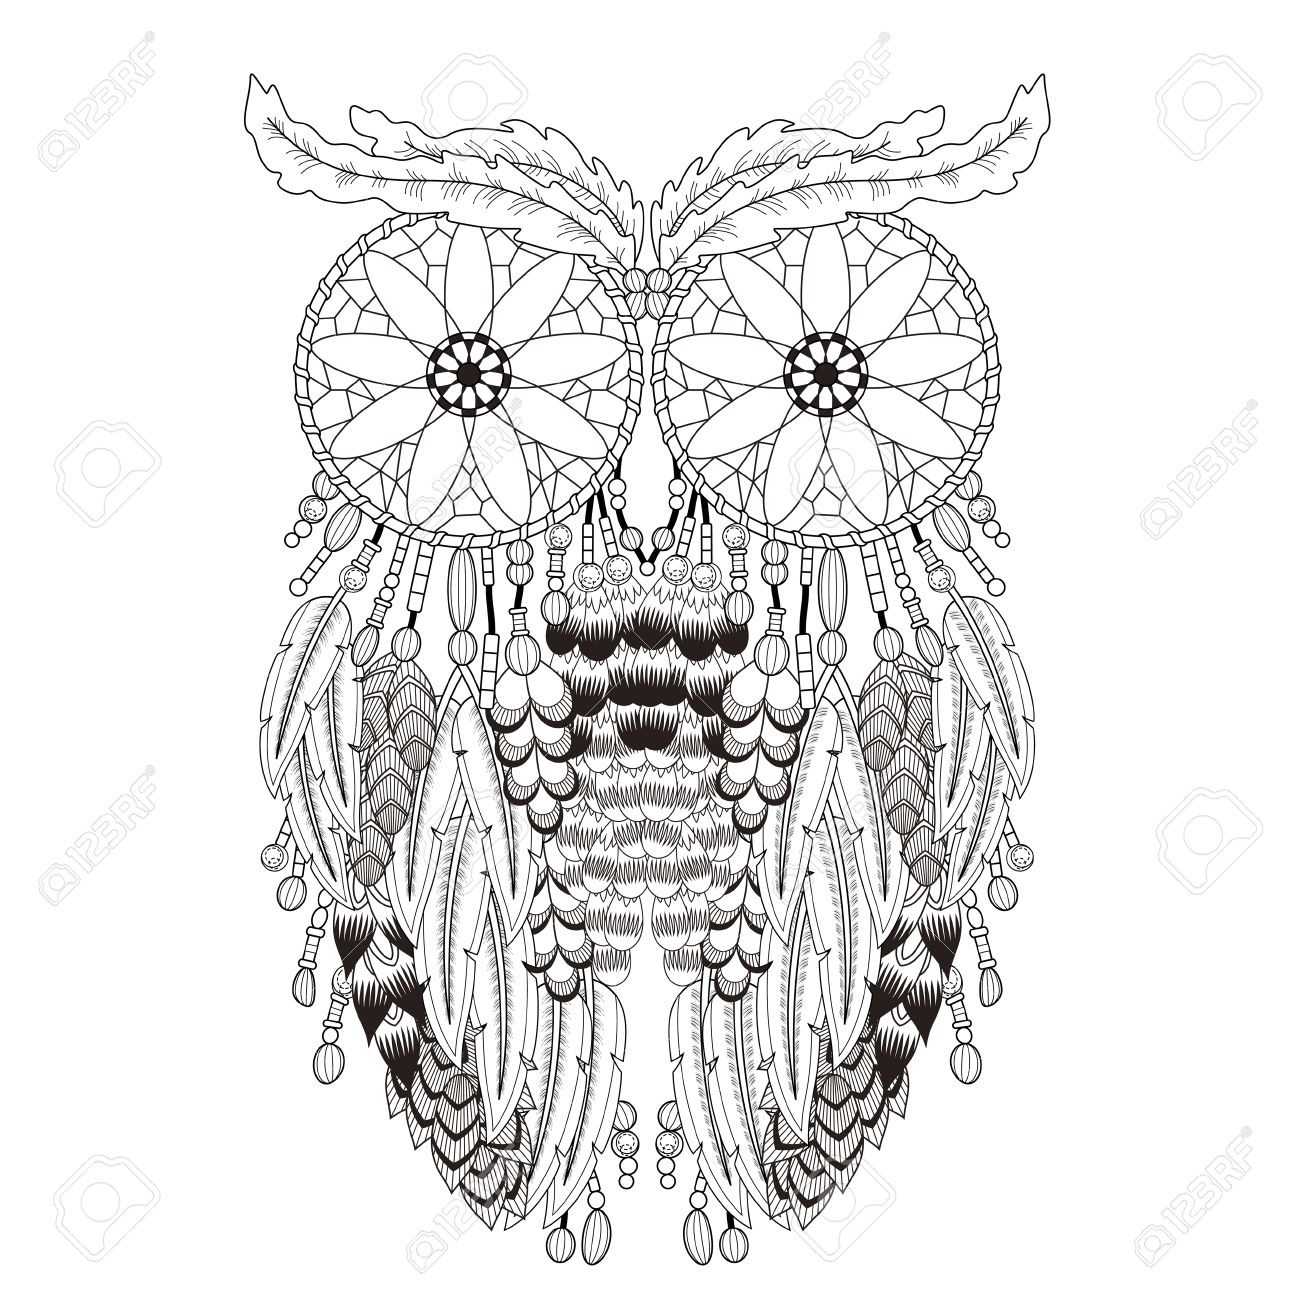 Dream Catcher Coloring Pages Breathtaking Owl Coloring Page With Dream Catchers In Exquisite